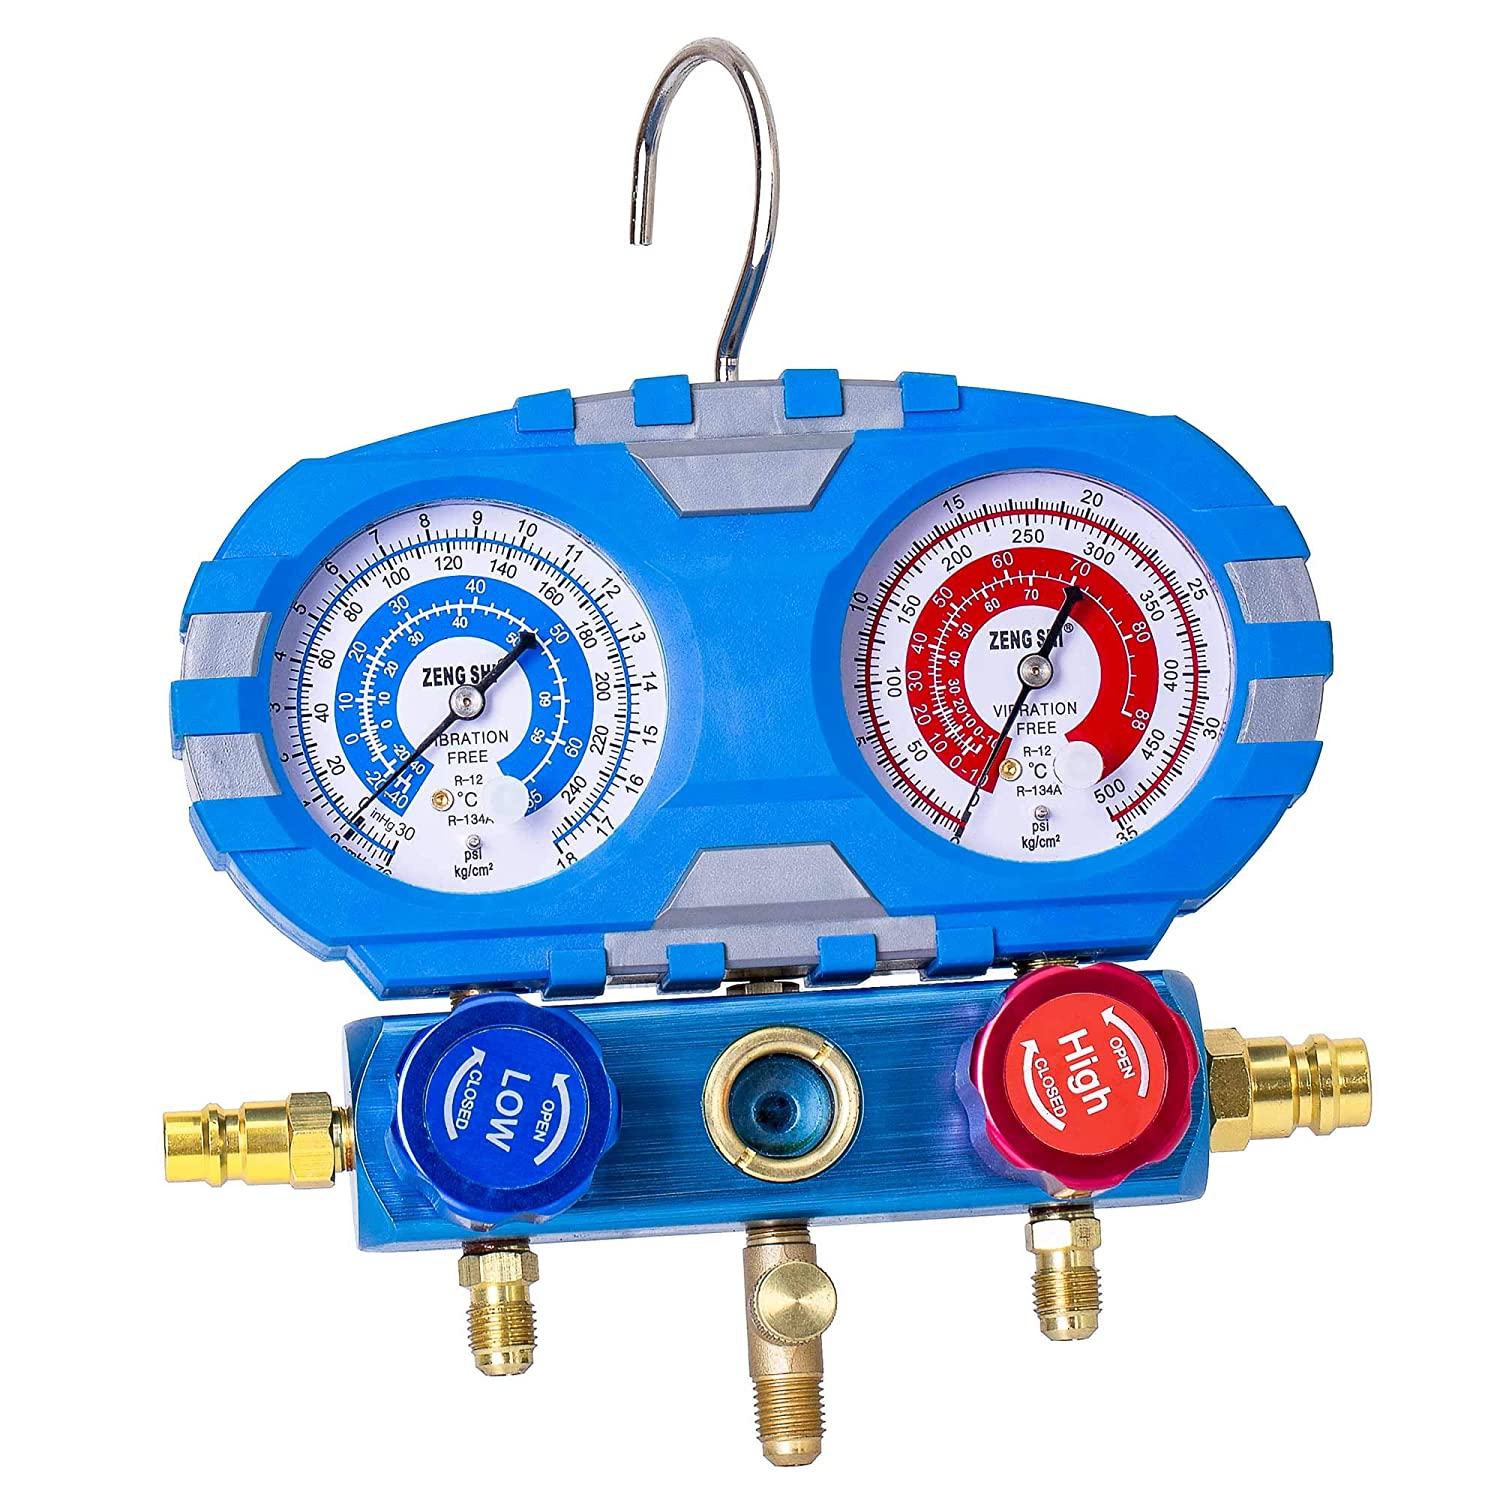 TIPLE TREE Manifold Gauge Set with 5ft 1/4 Hose for R410a R22 R134a